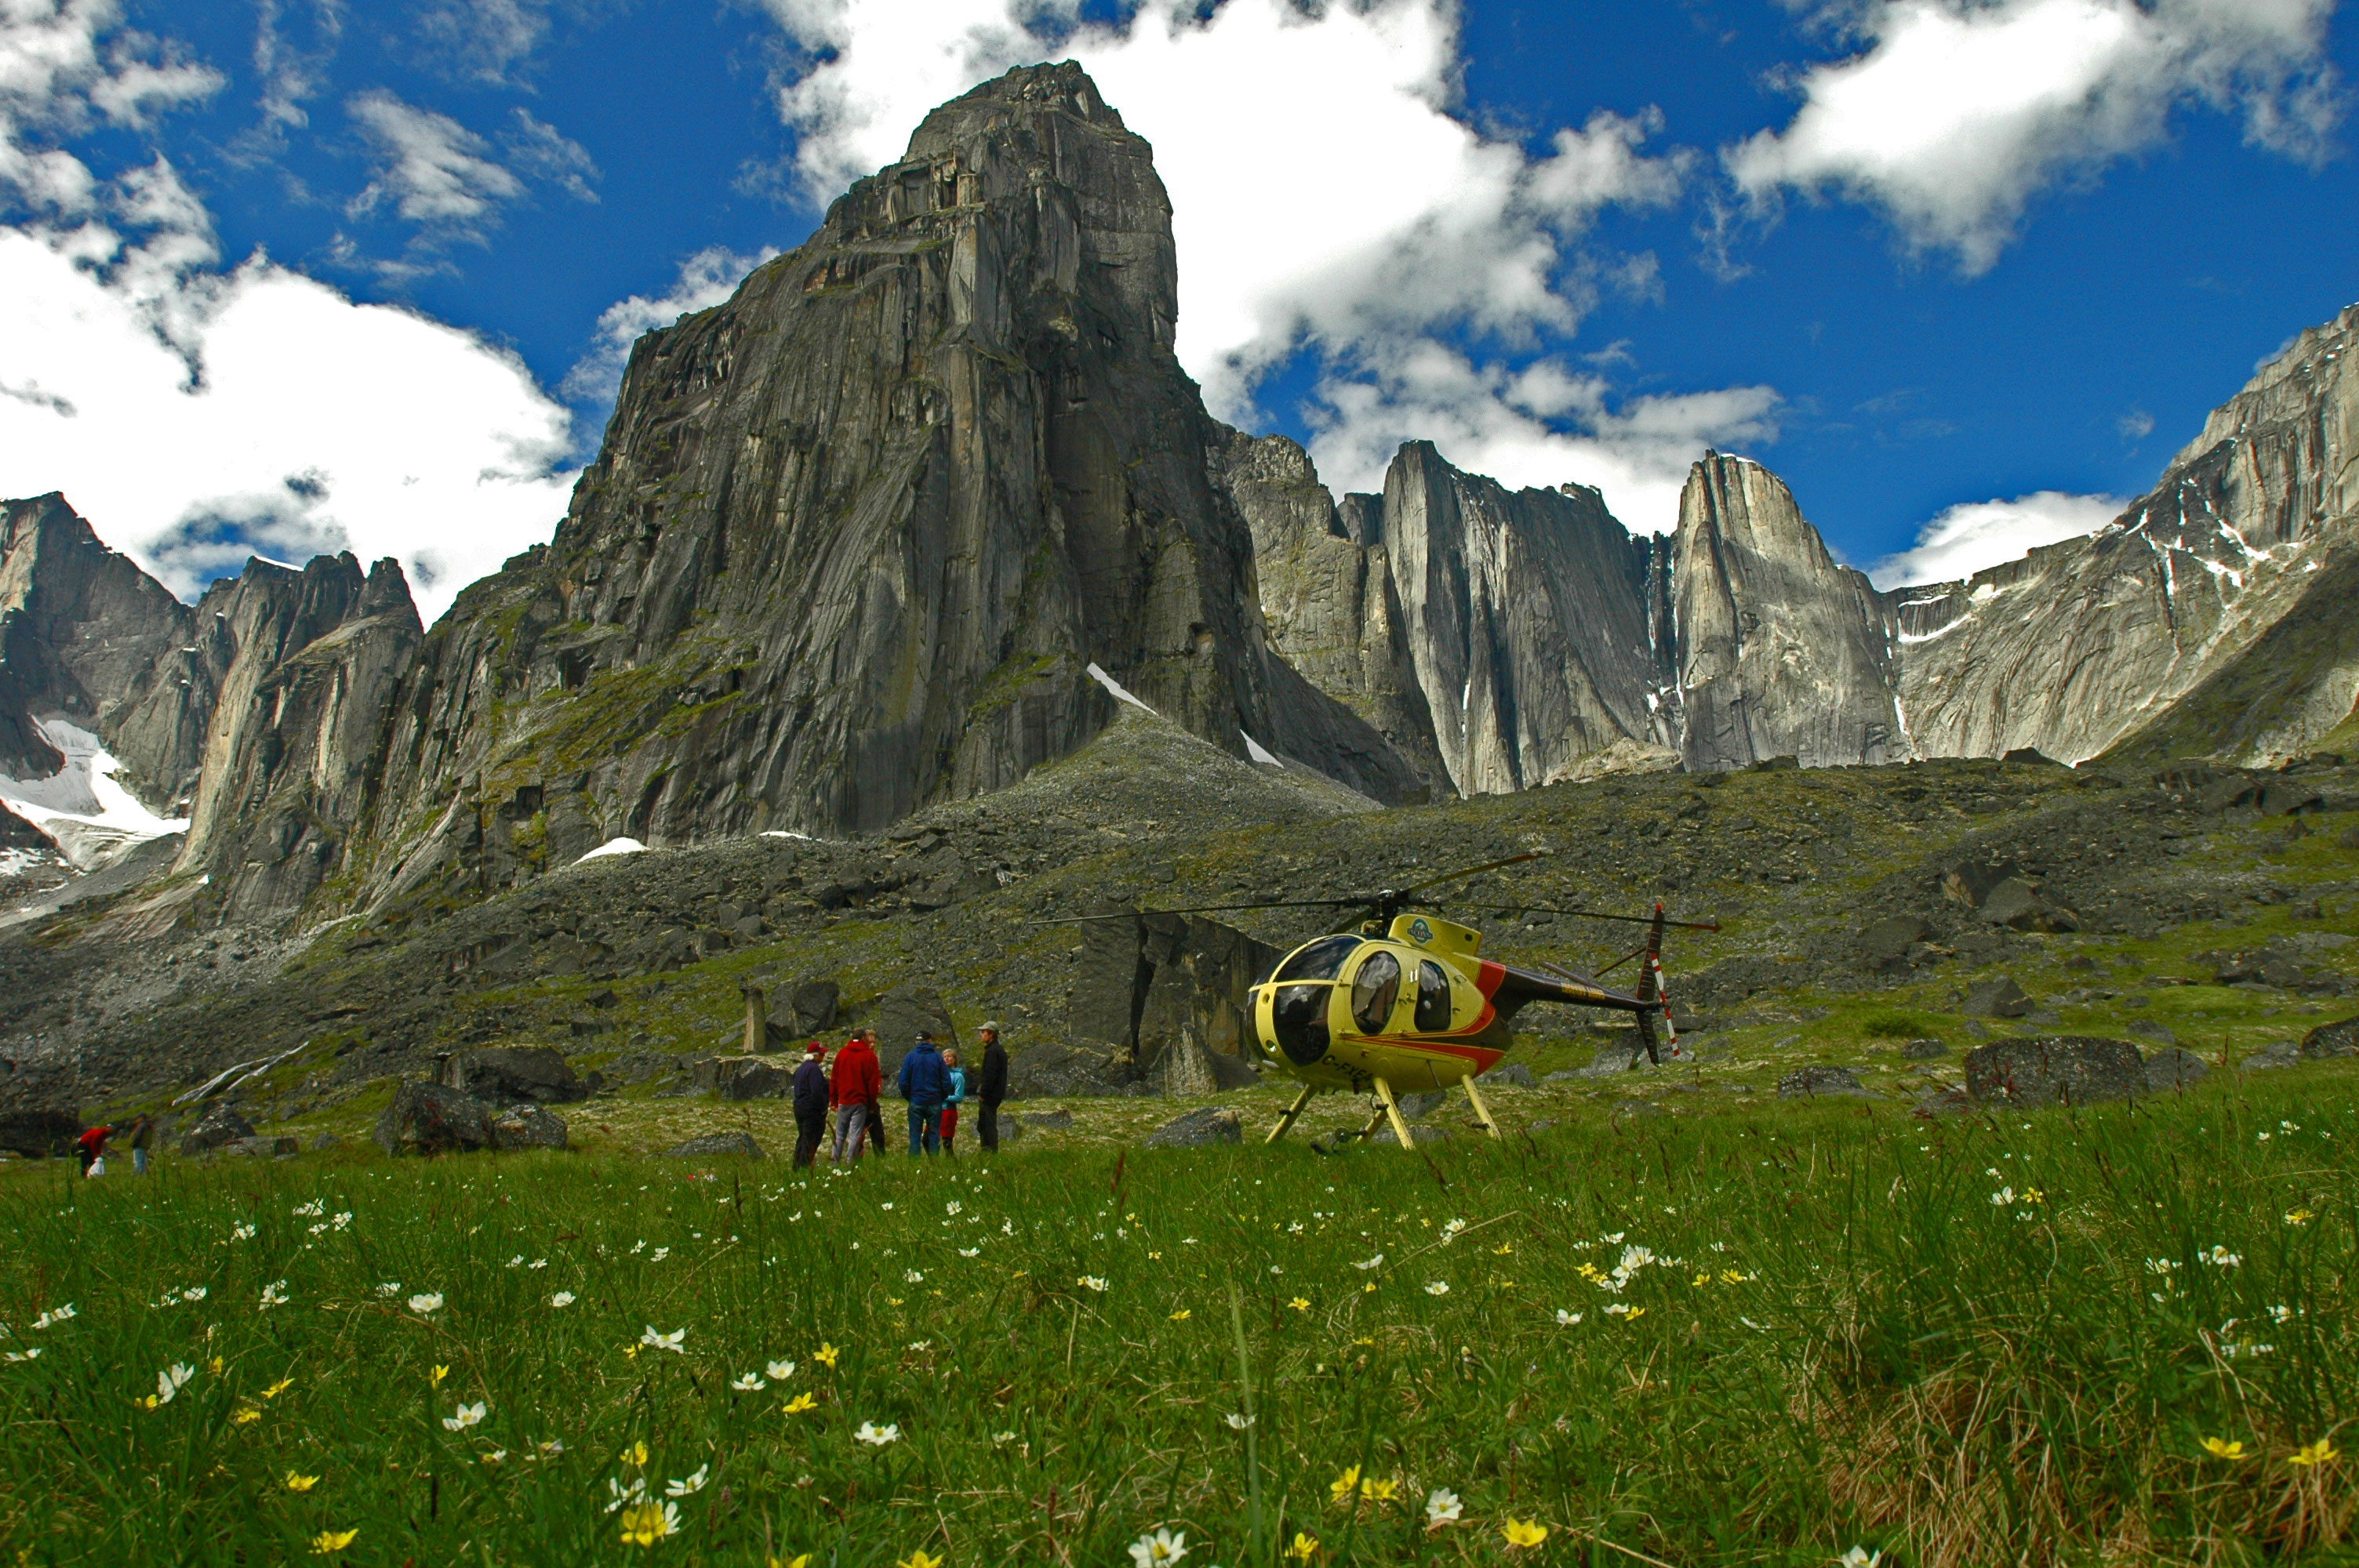 These adventurers have landed on a meadow inside Nahanni National Park, via the Hughes 500 helicopter owned and flown by Warren LaFave of the Inconnu Lodge. Behind them, near-vertical granite cliffs rise several thousand feet, forming what is known as the 'Cirque of the Unclimbables.'  Mountain climbers come here from all over the world to test their skills. Photo courtesy Inconnu Lodge.